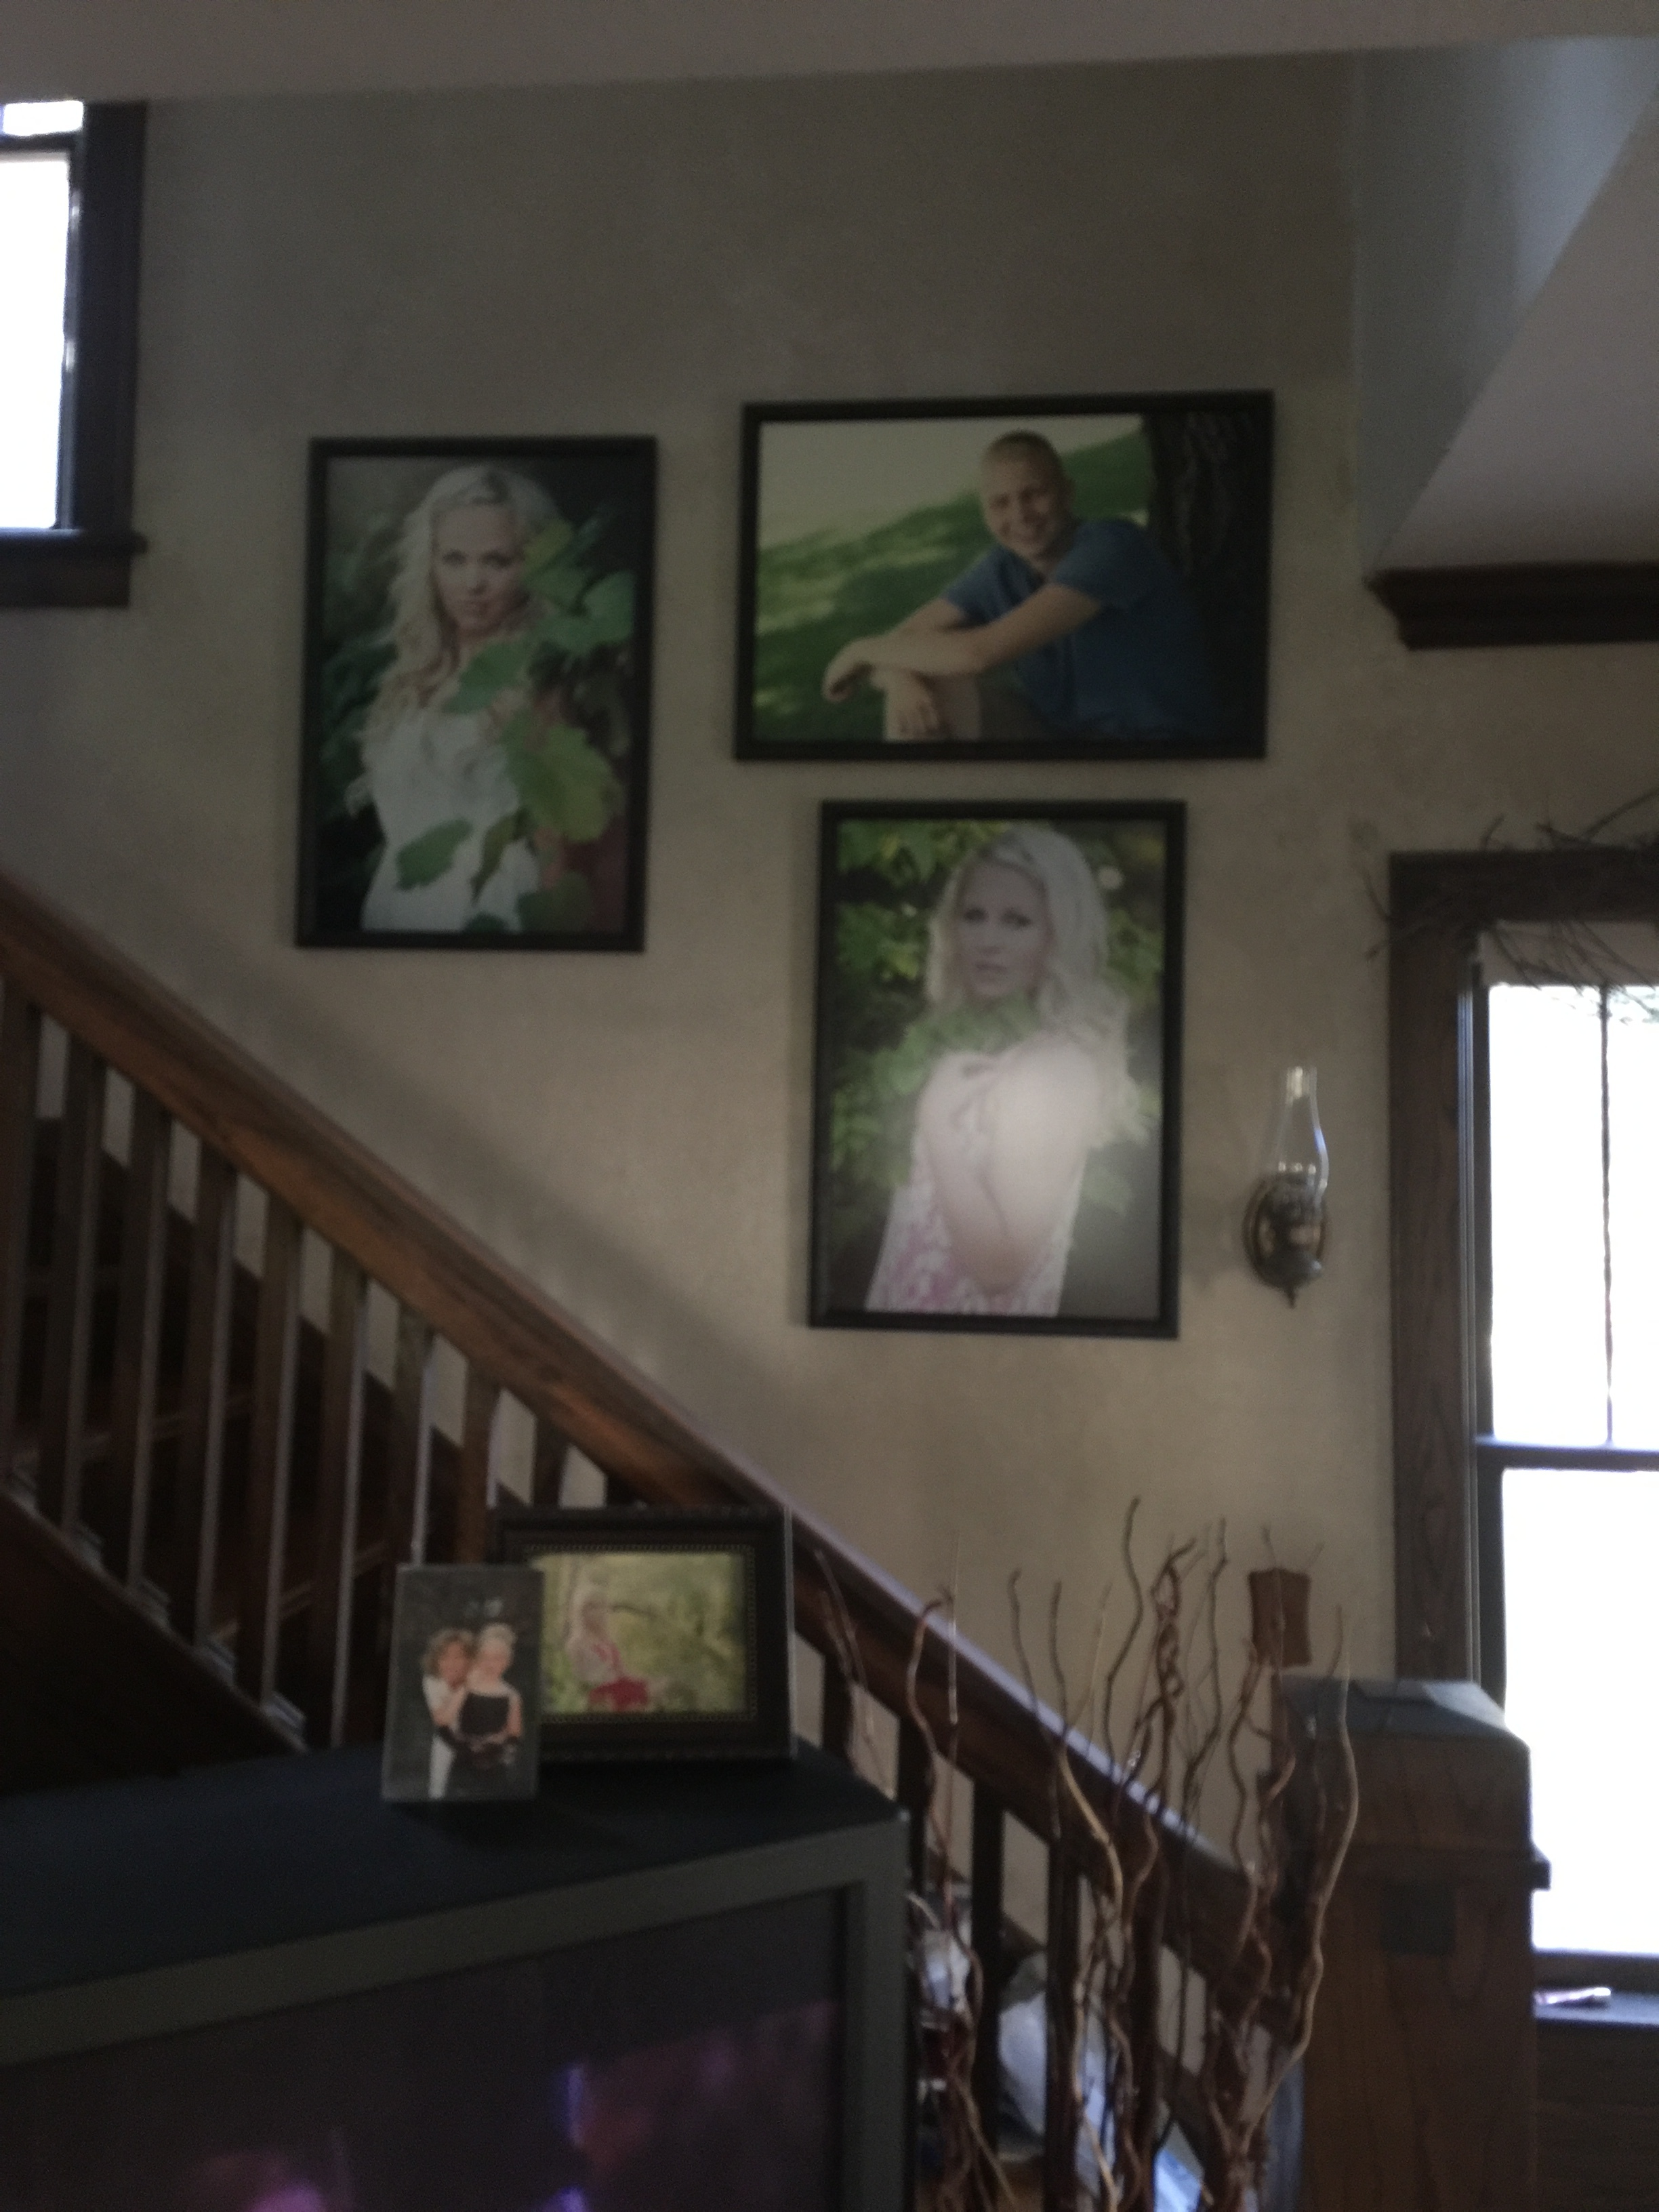 Carter's wall image hanging in his home next to his sisters's images!